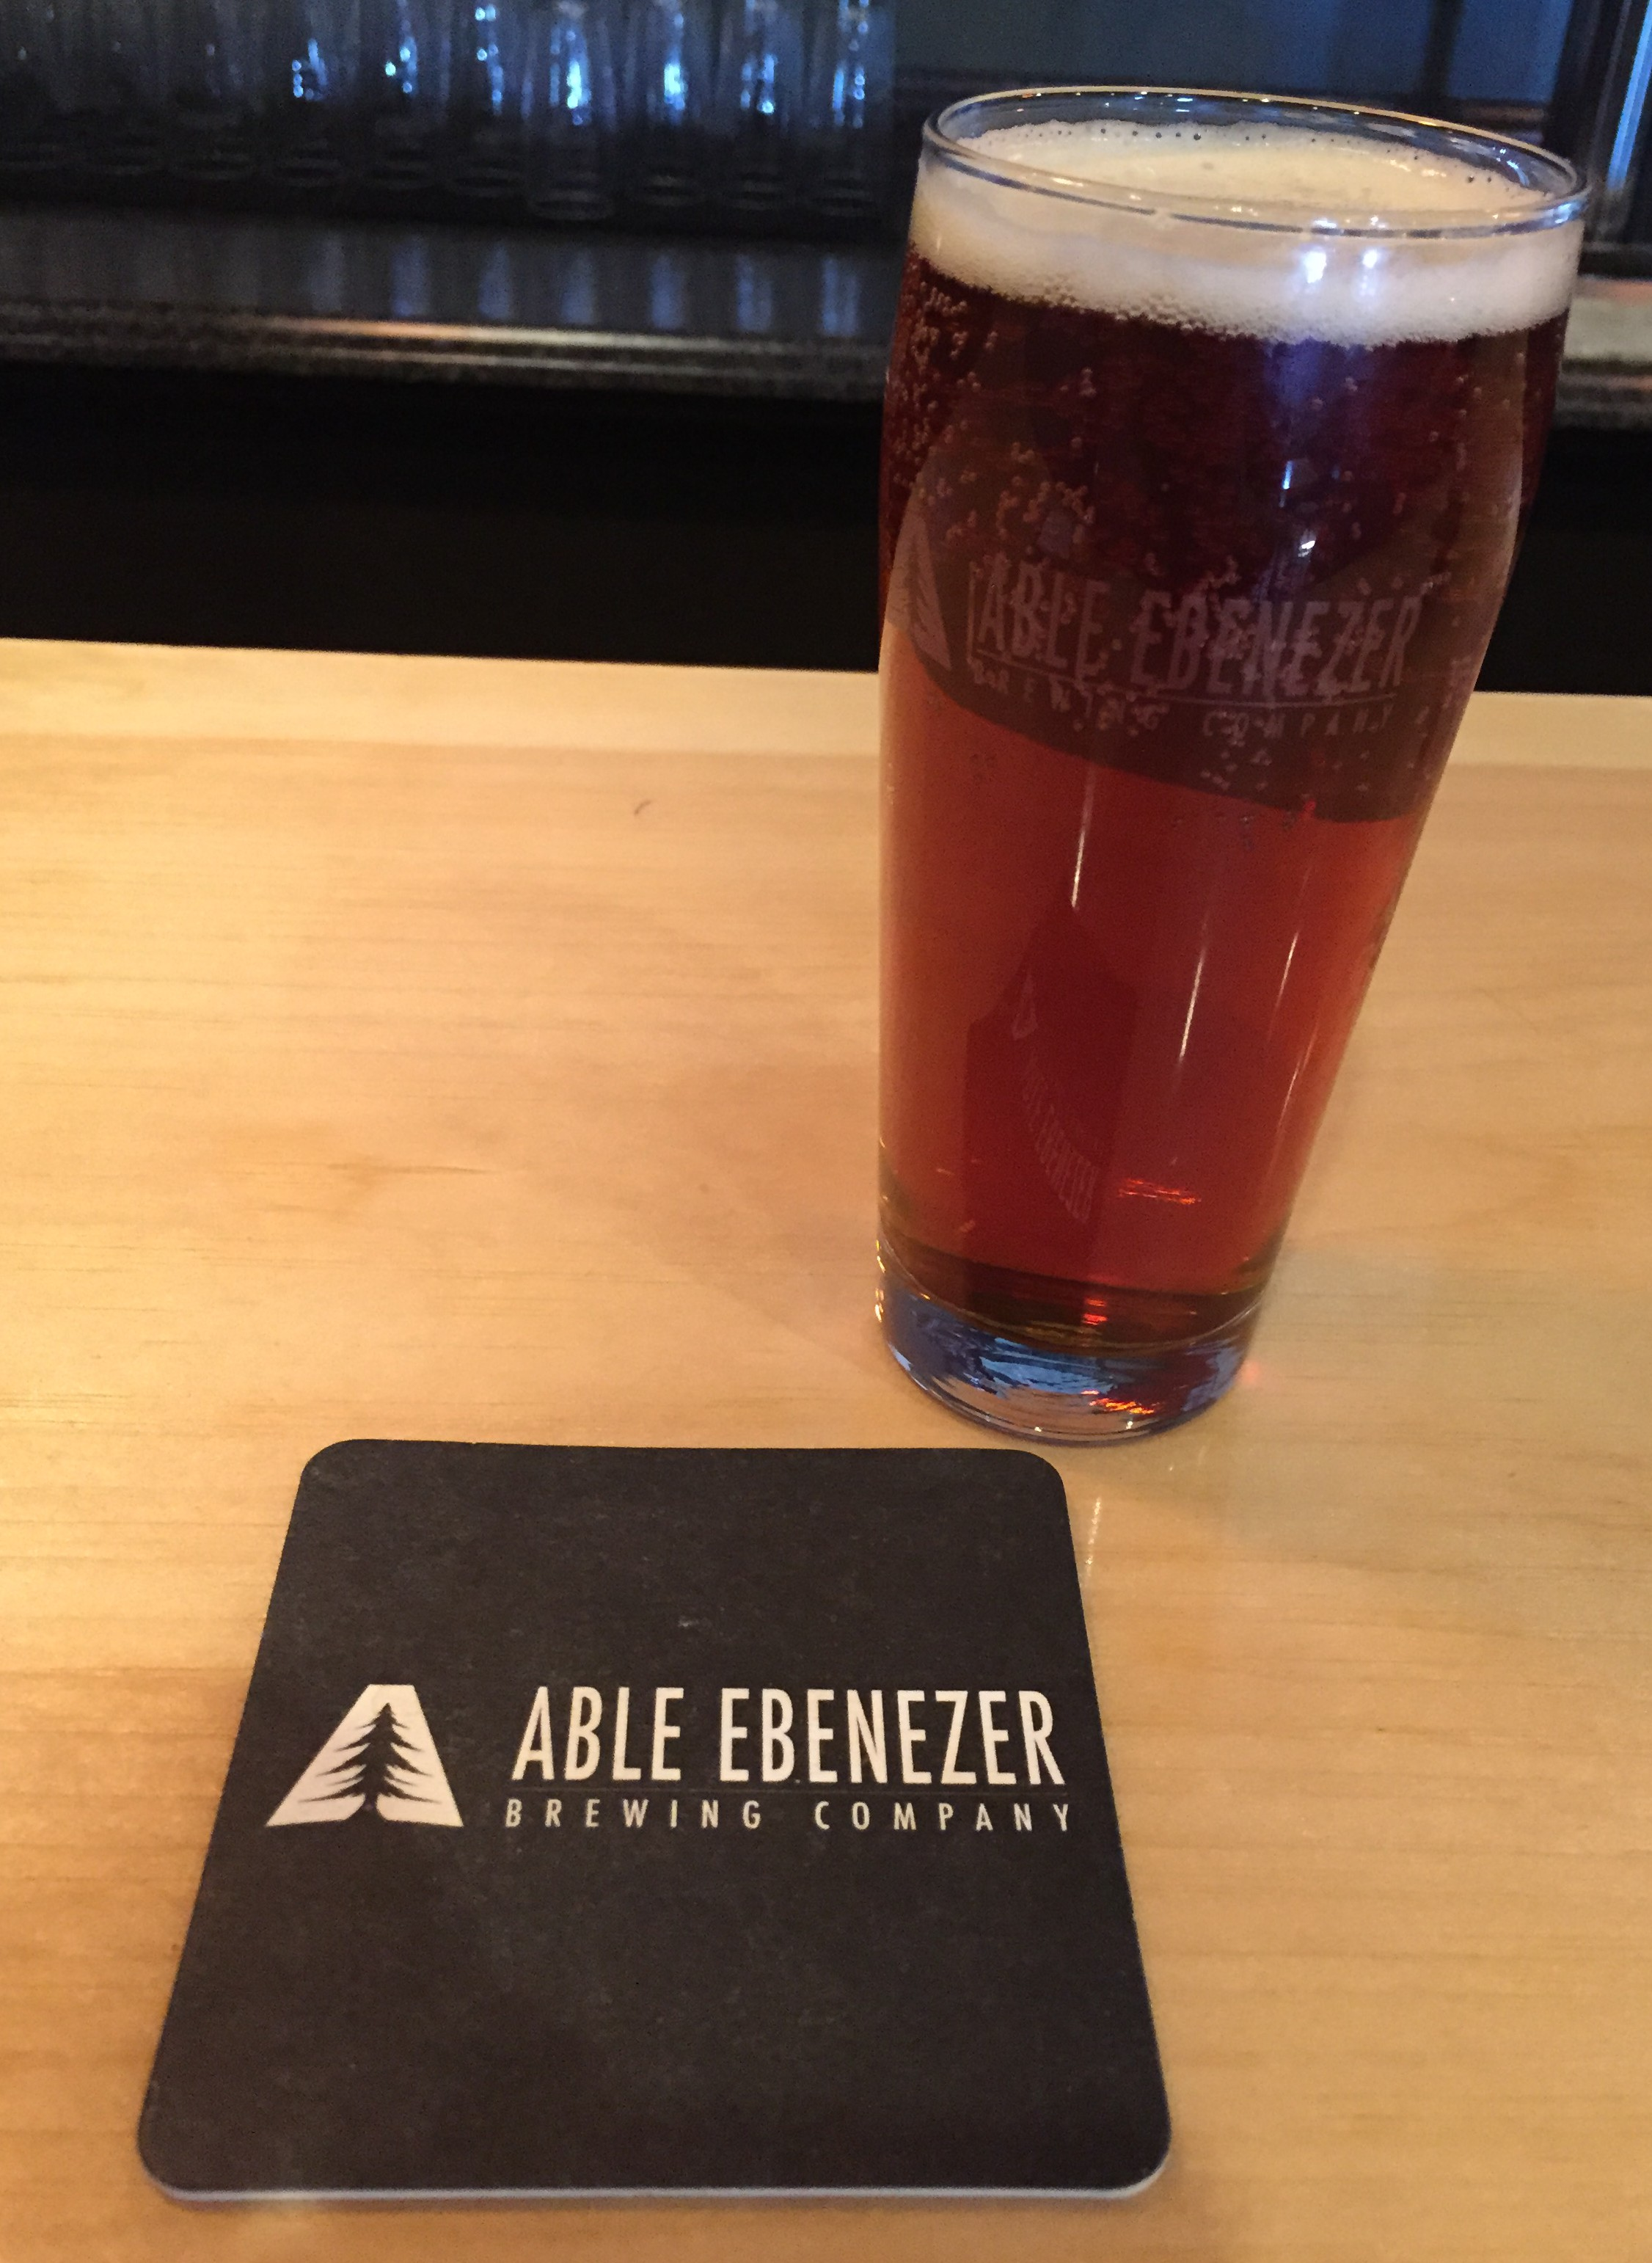 Able Ebenezer Brewing Company Merrimack Nh Breweries